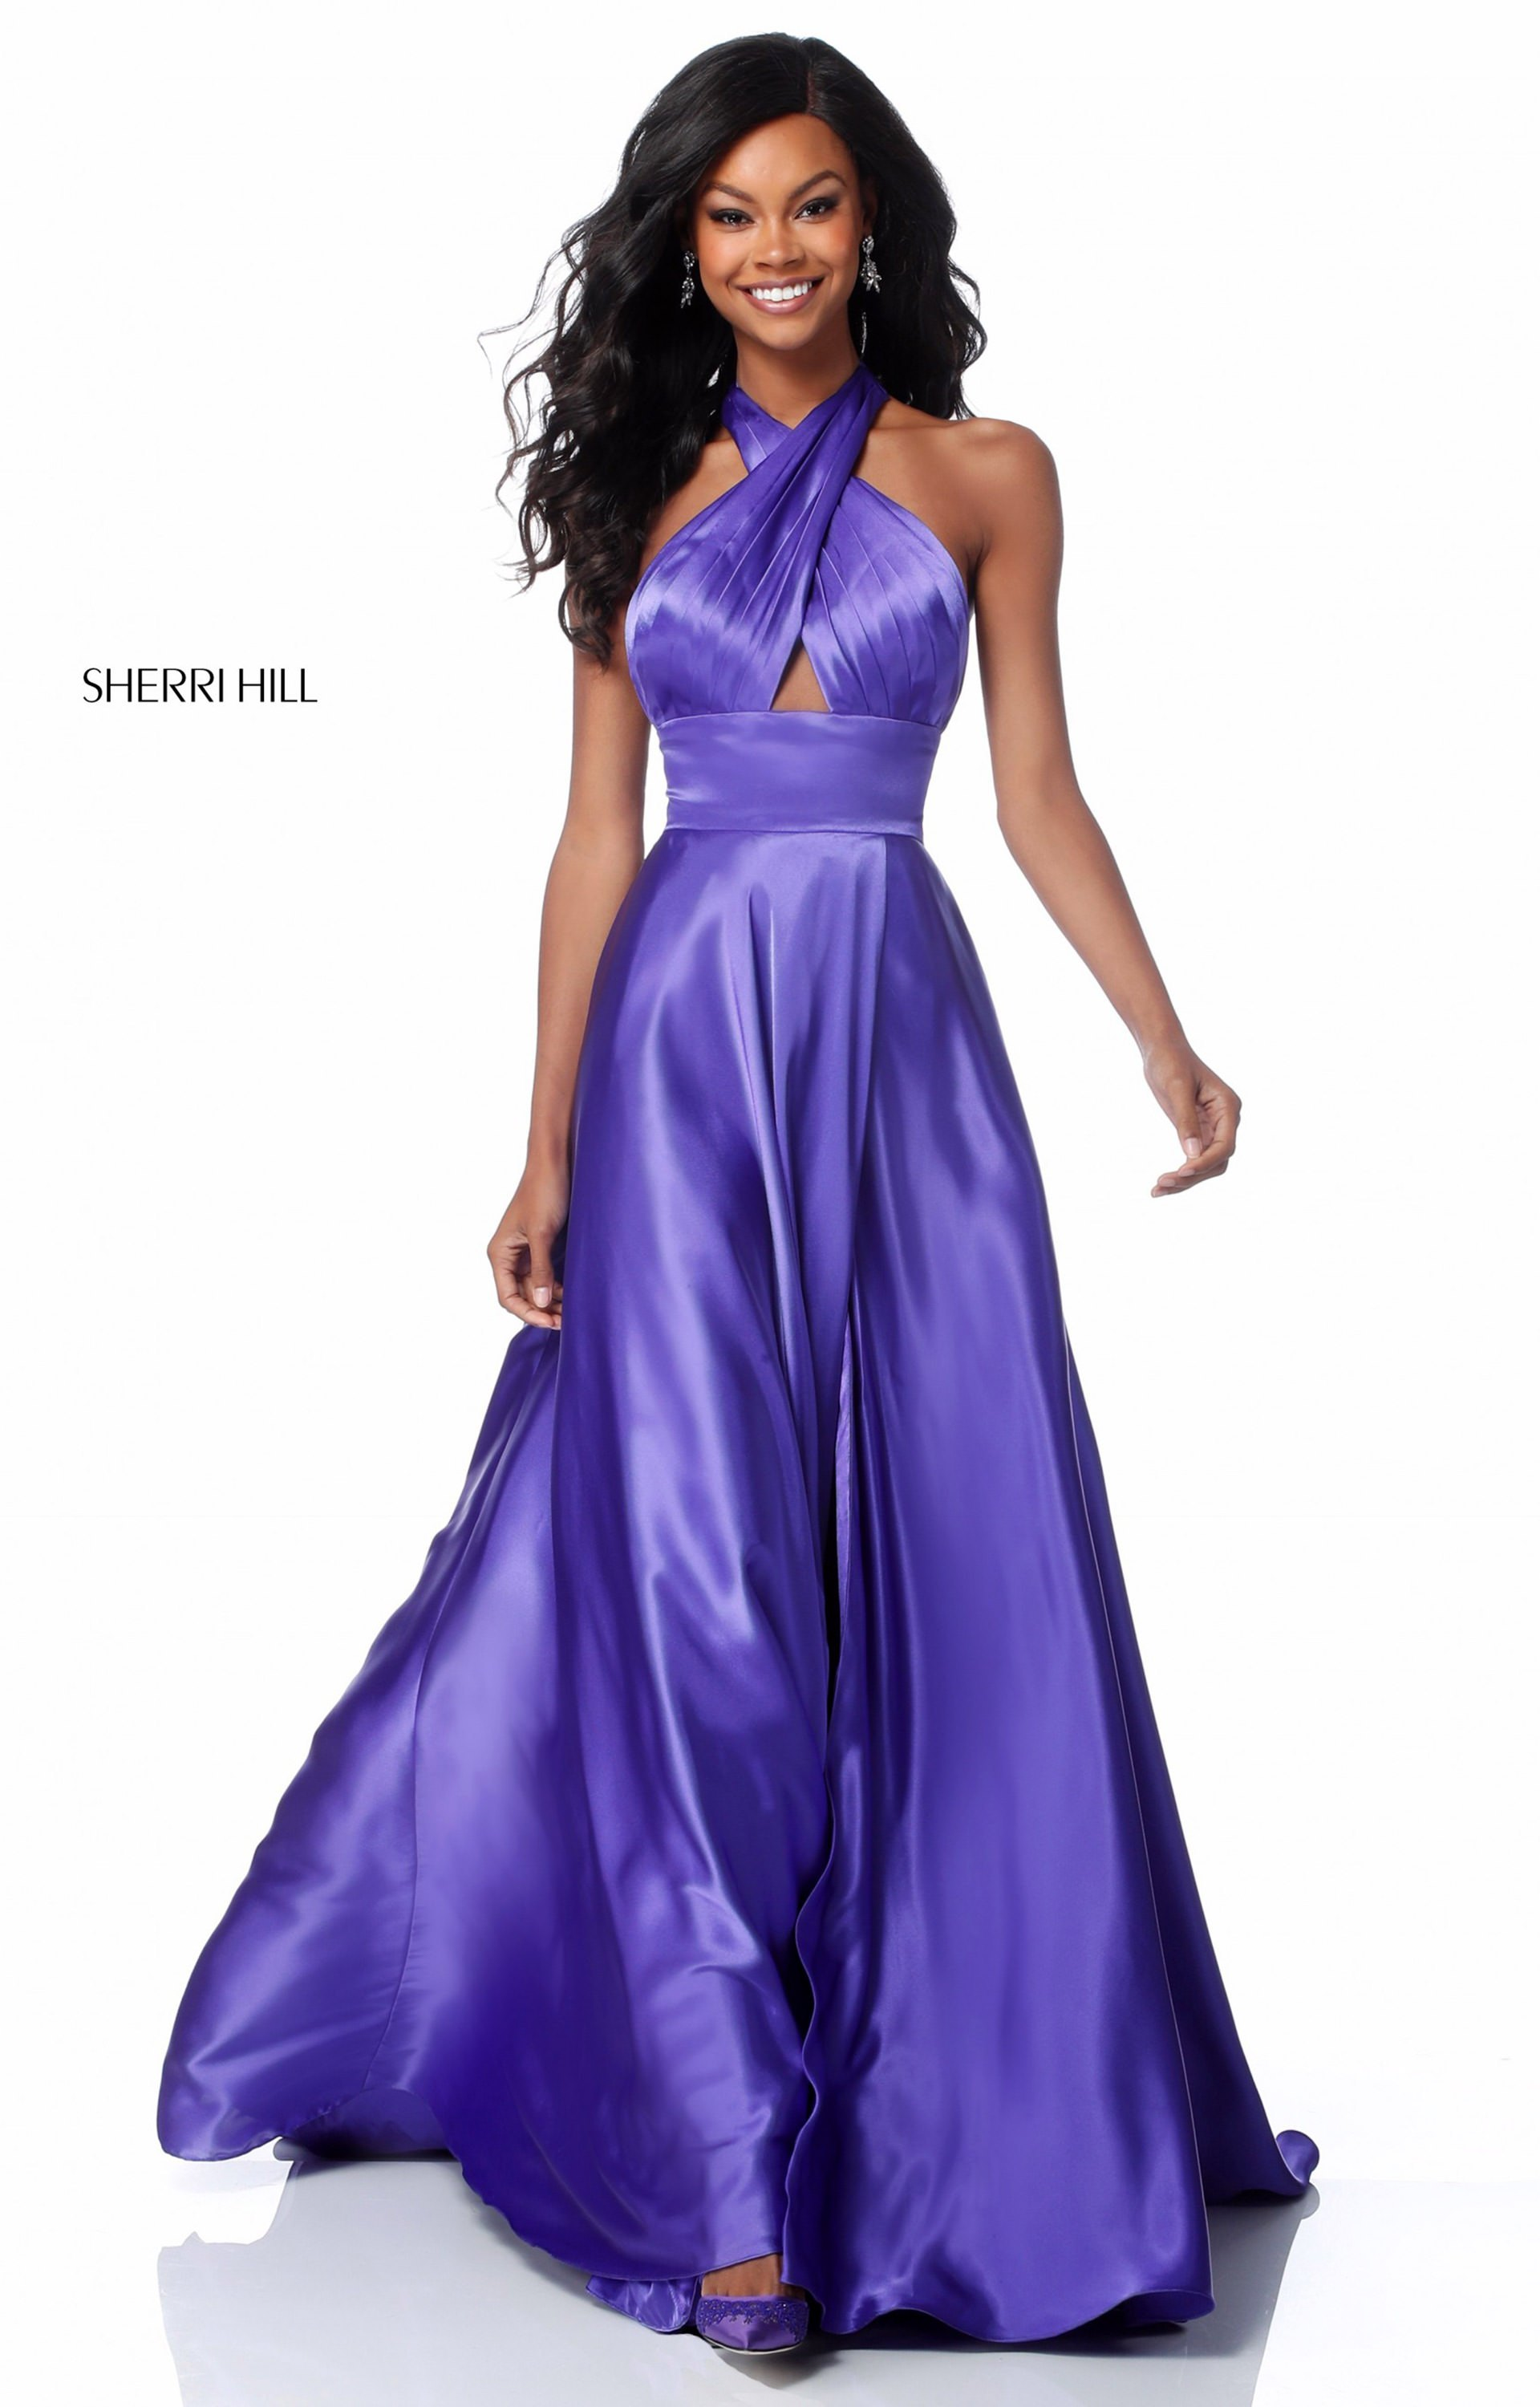 fba8dcda7e Sherri Hill 51897 - Long A-Line Charmeuse Prom Dress